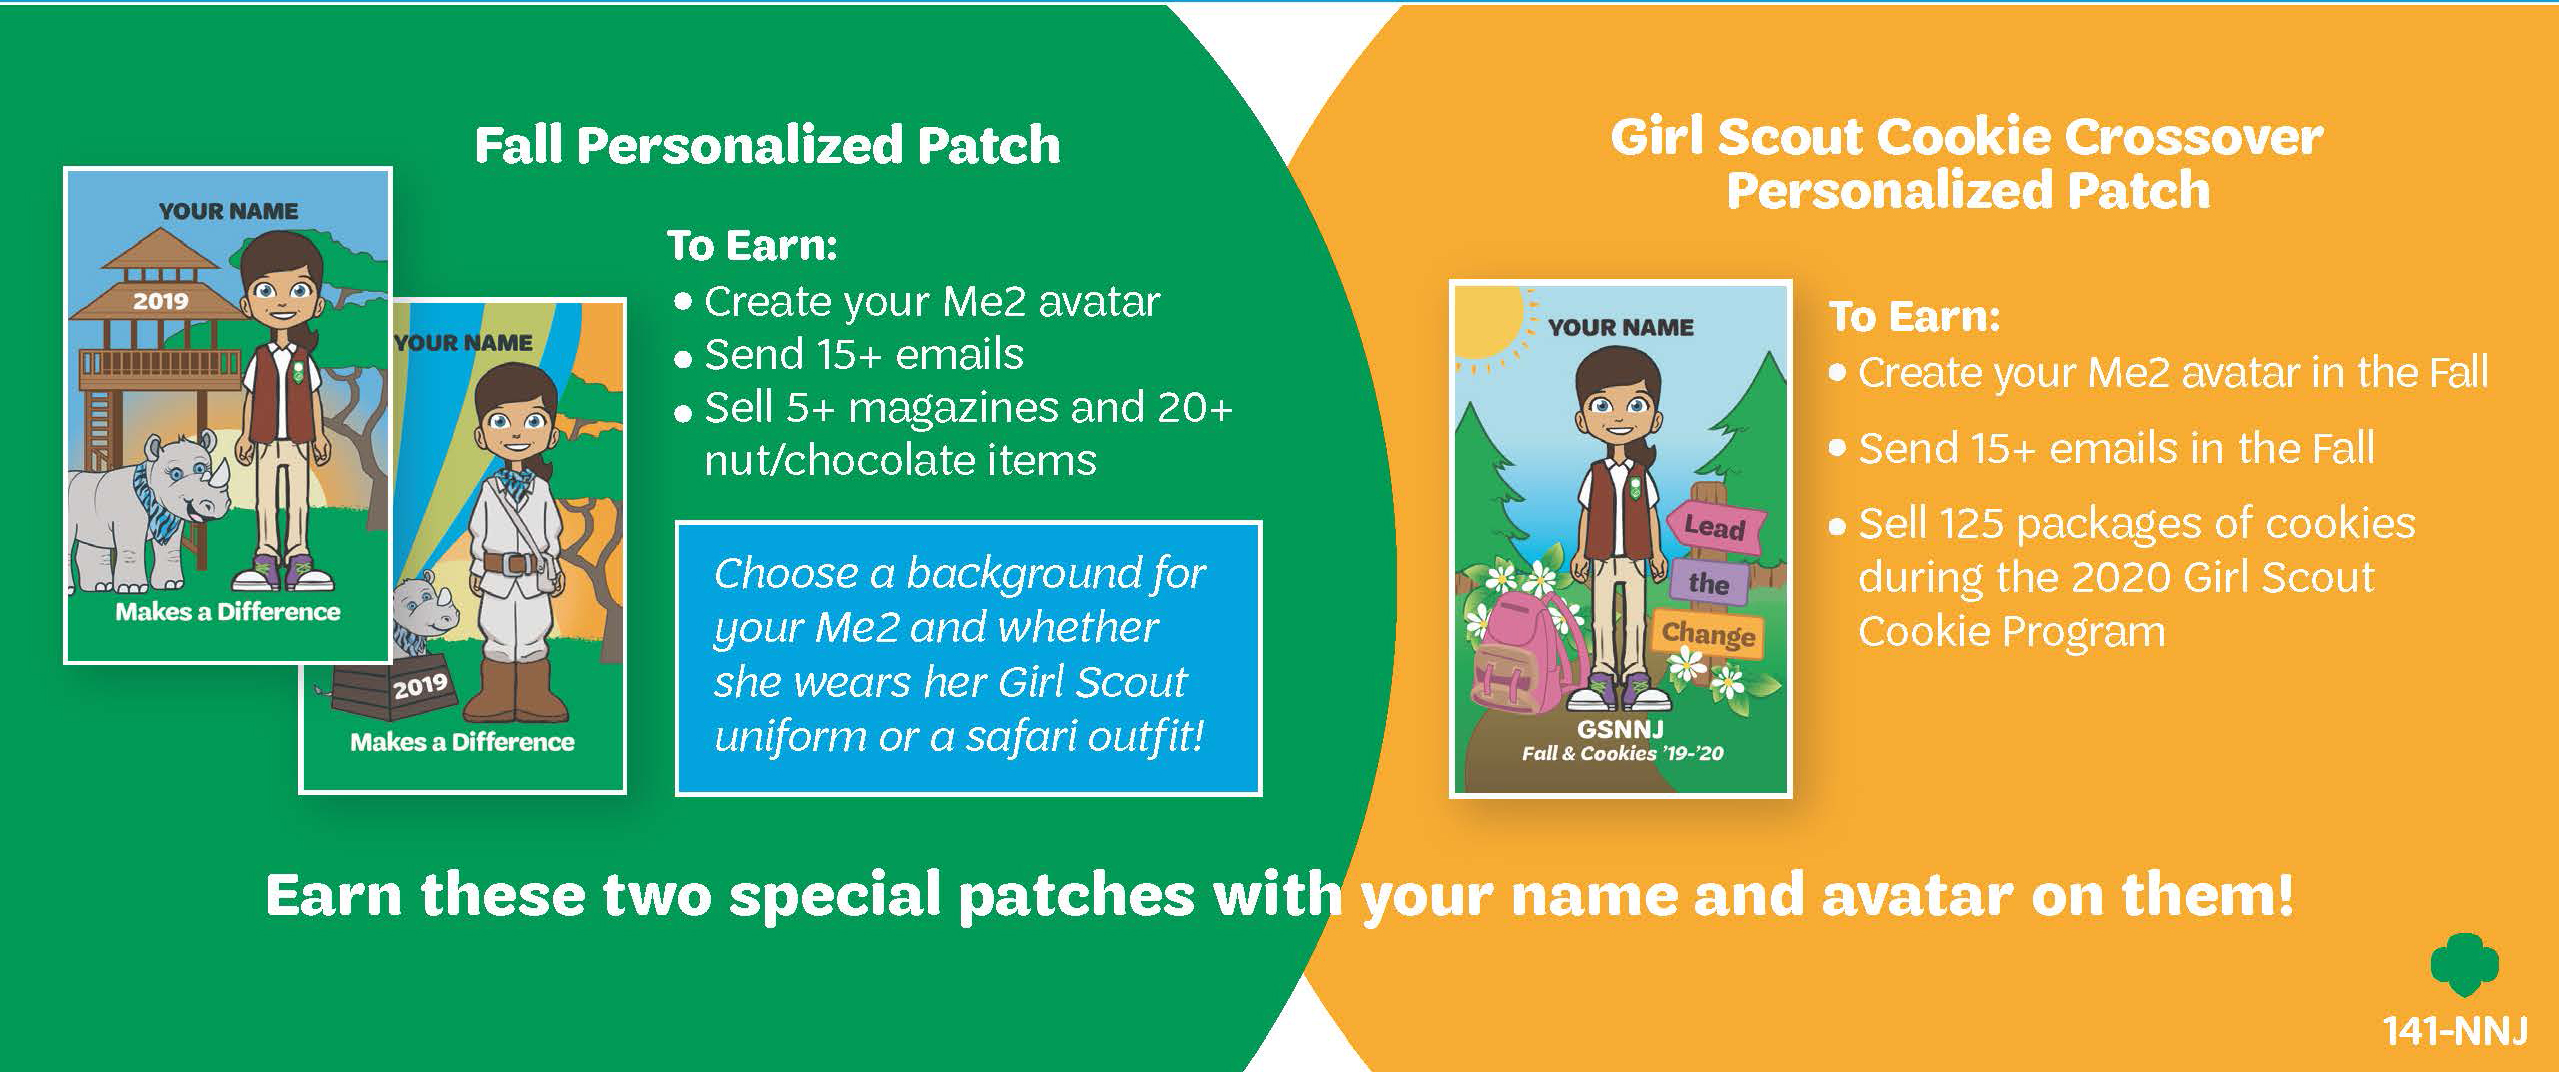 girl scouts fall product 2020